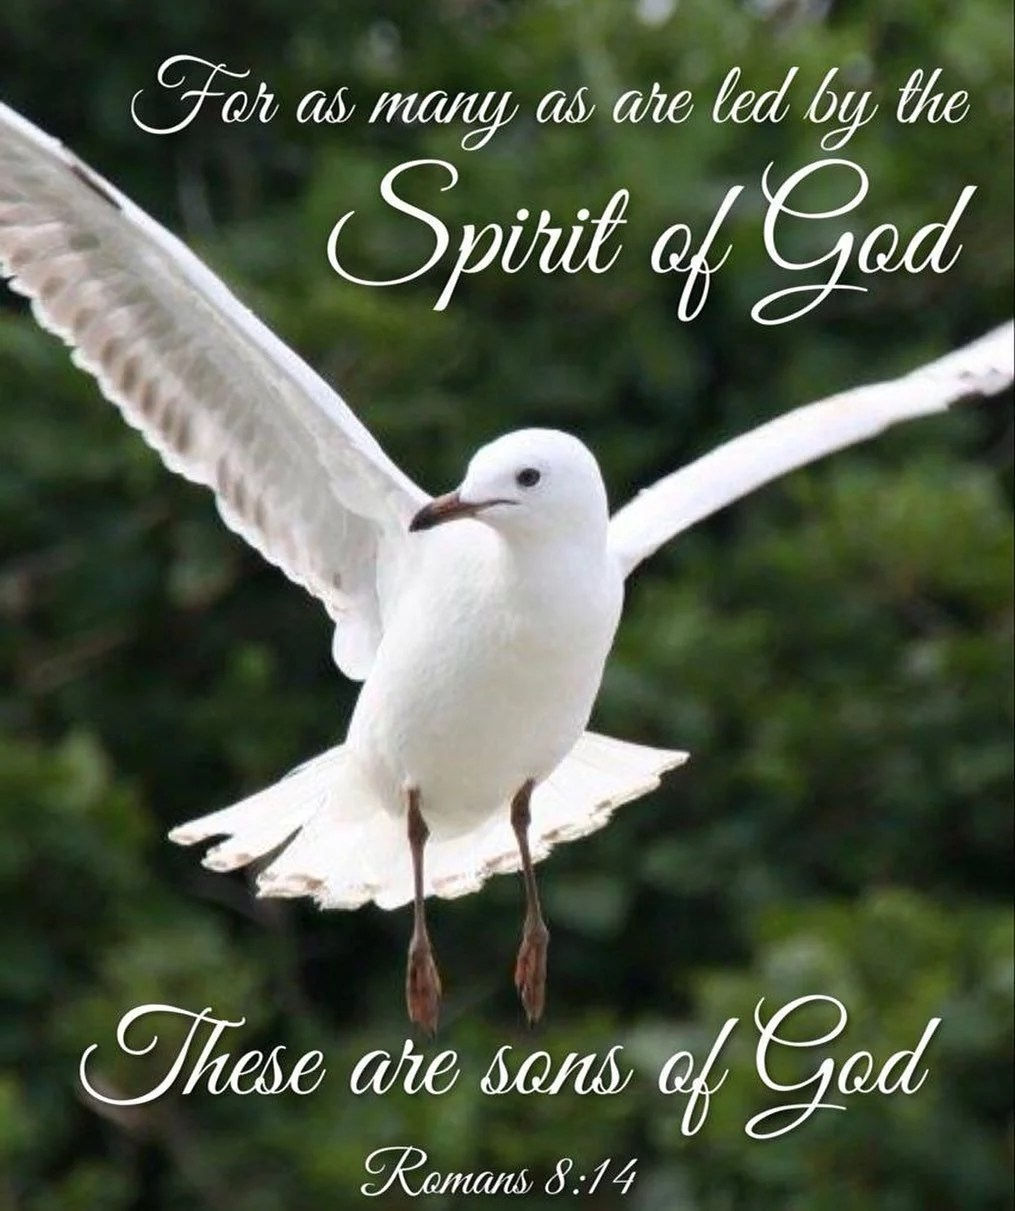 A greedy soul is deprived of wisdom but a compassionate soul is made wise by the Spirit. - St. Isaac the Syrian #christian #orthodox #spirit